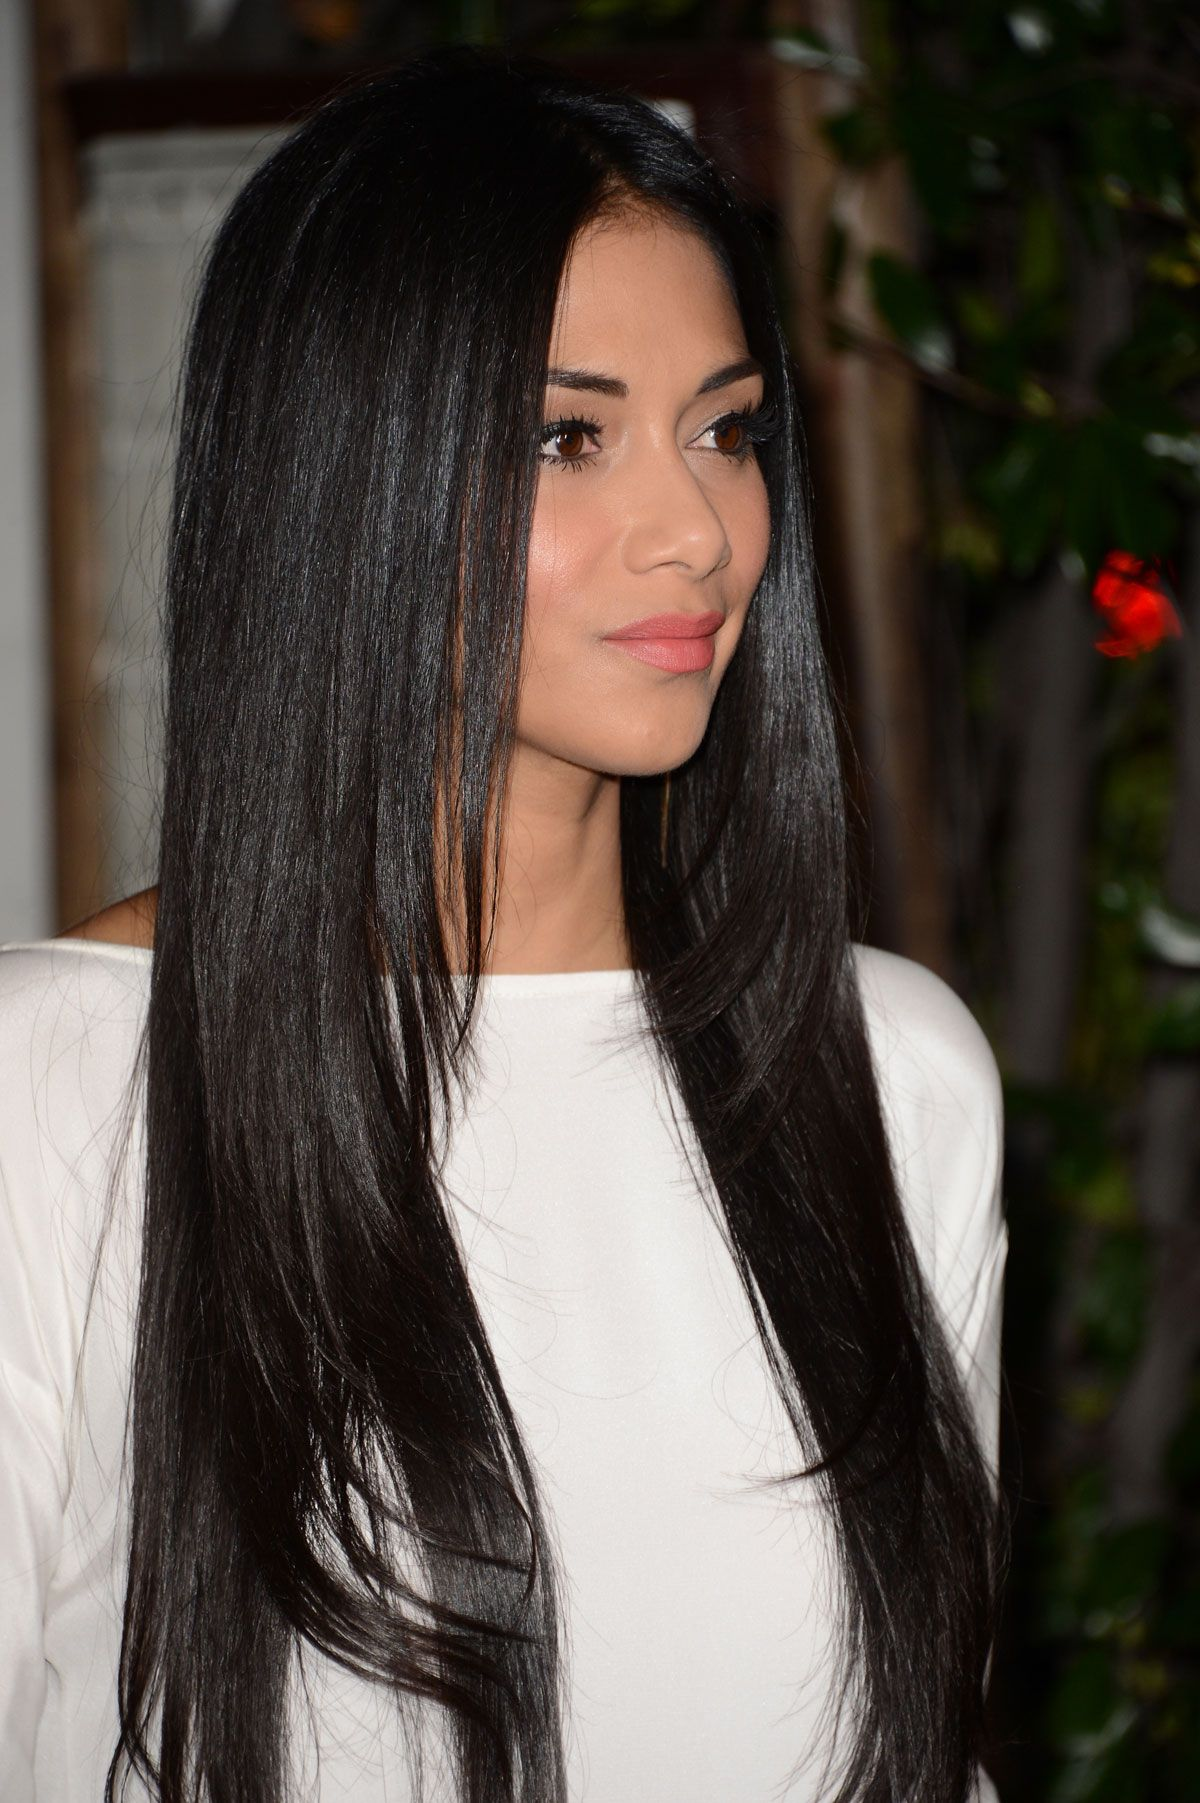 Nicole Scherzinger New Hairstyle 2014 For Long Hair Long Black Hair Long Hair Styles Long Straight Hair